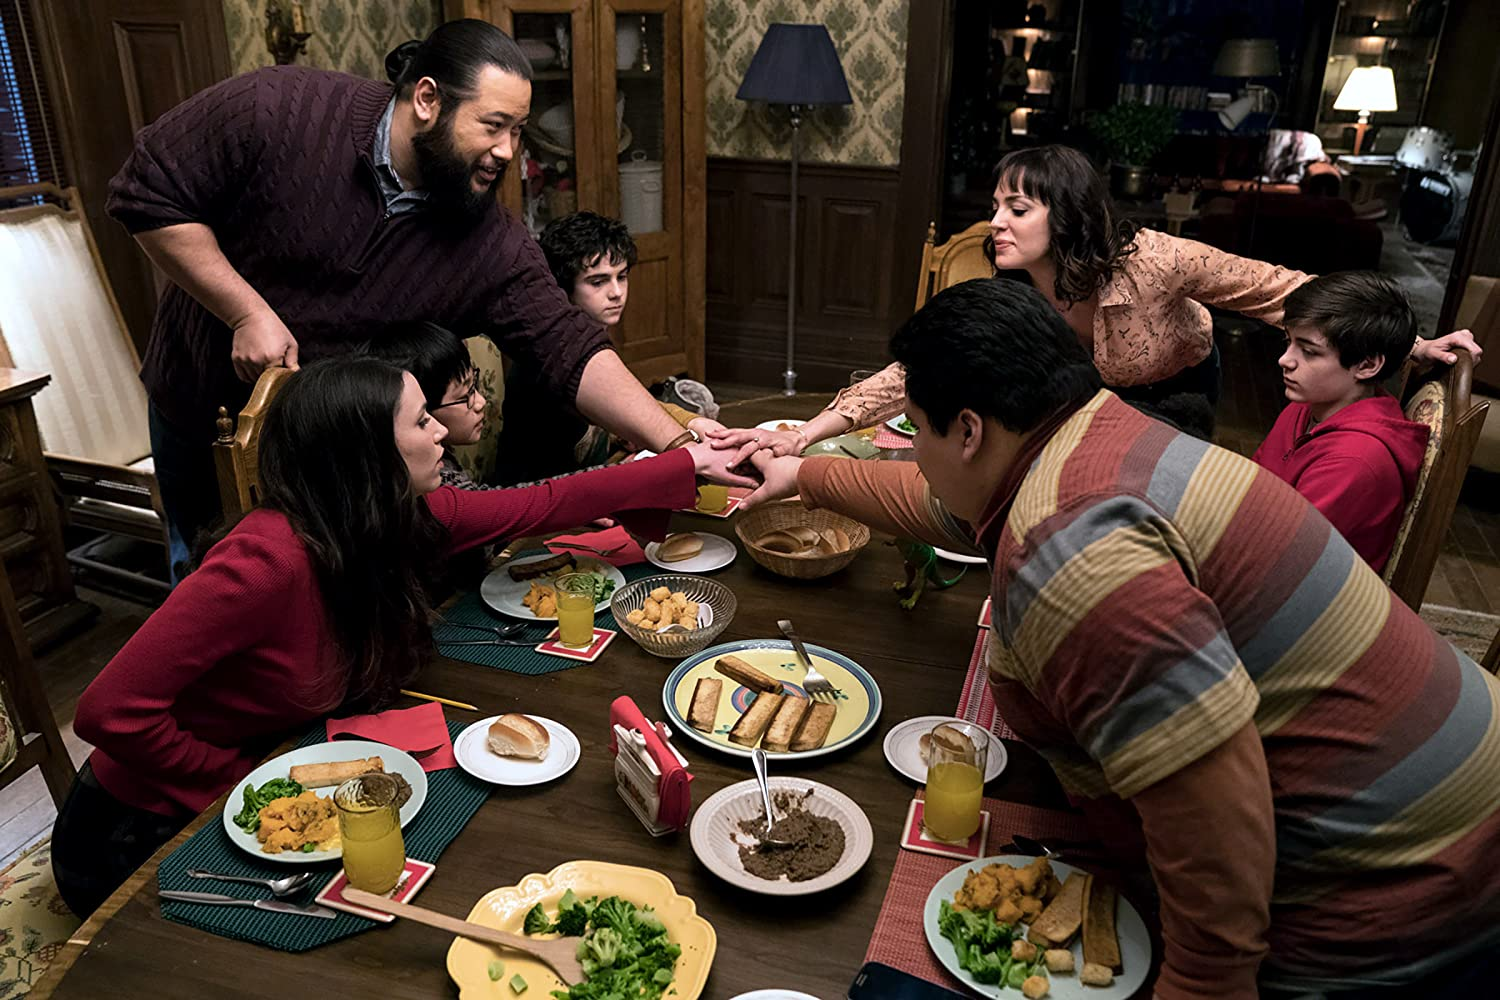 Grace Fulton, Cooper Andrews, Marta Milans, Jovan Armand, Asher Angel, Jack Dylan Grazer, and Ian Chen in Shazam! (2019)